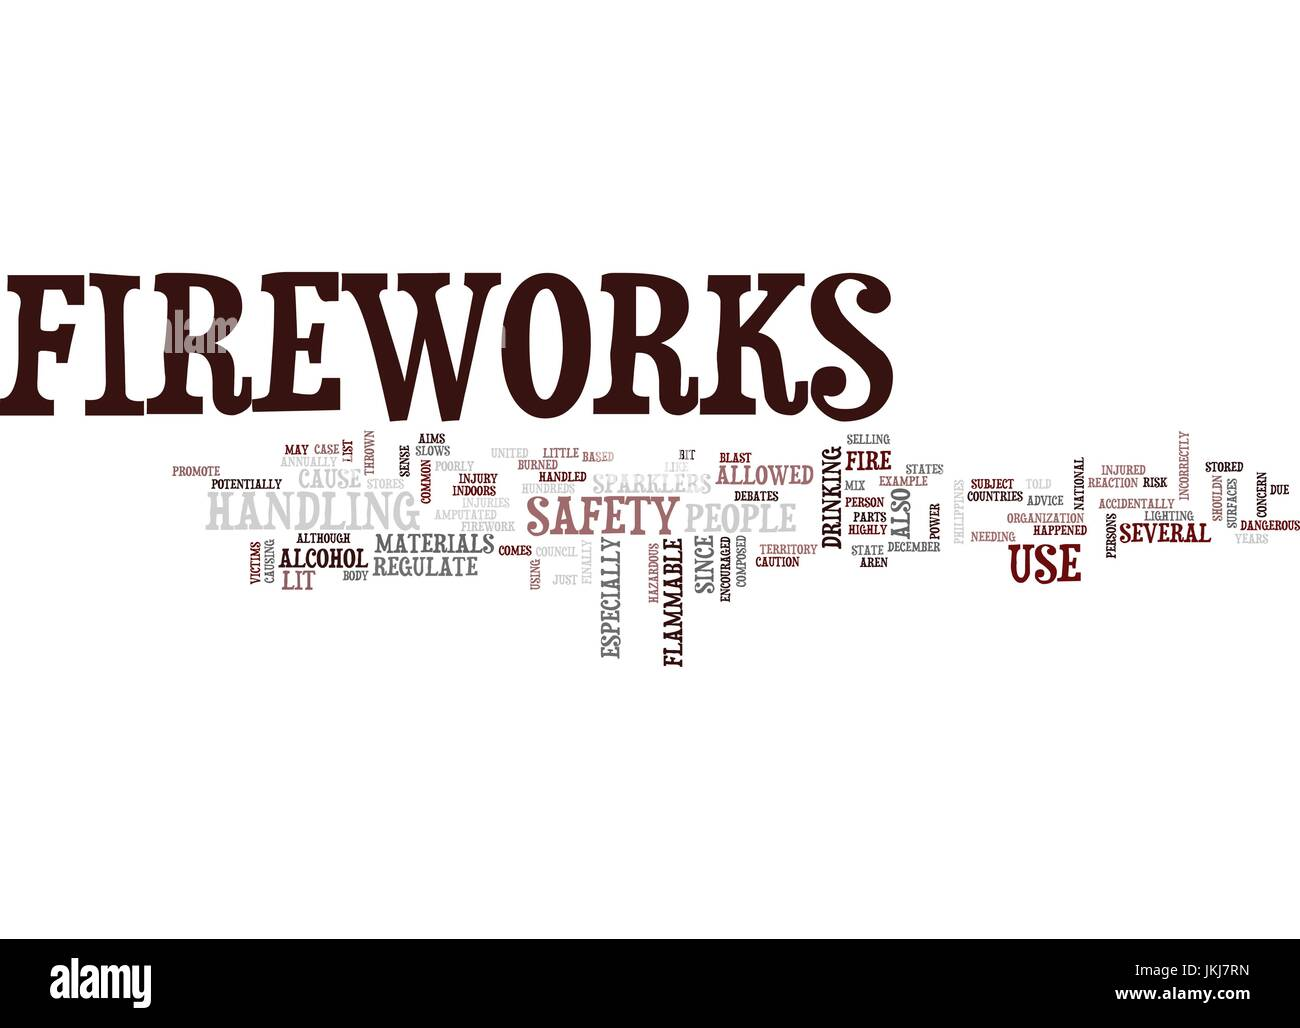 FIREWORKS SAFETY Text Background Word Cloud Concept - Stock Vector